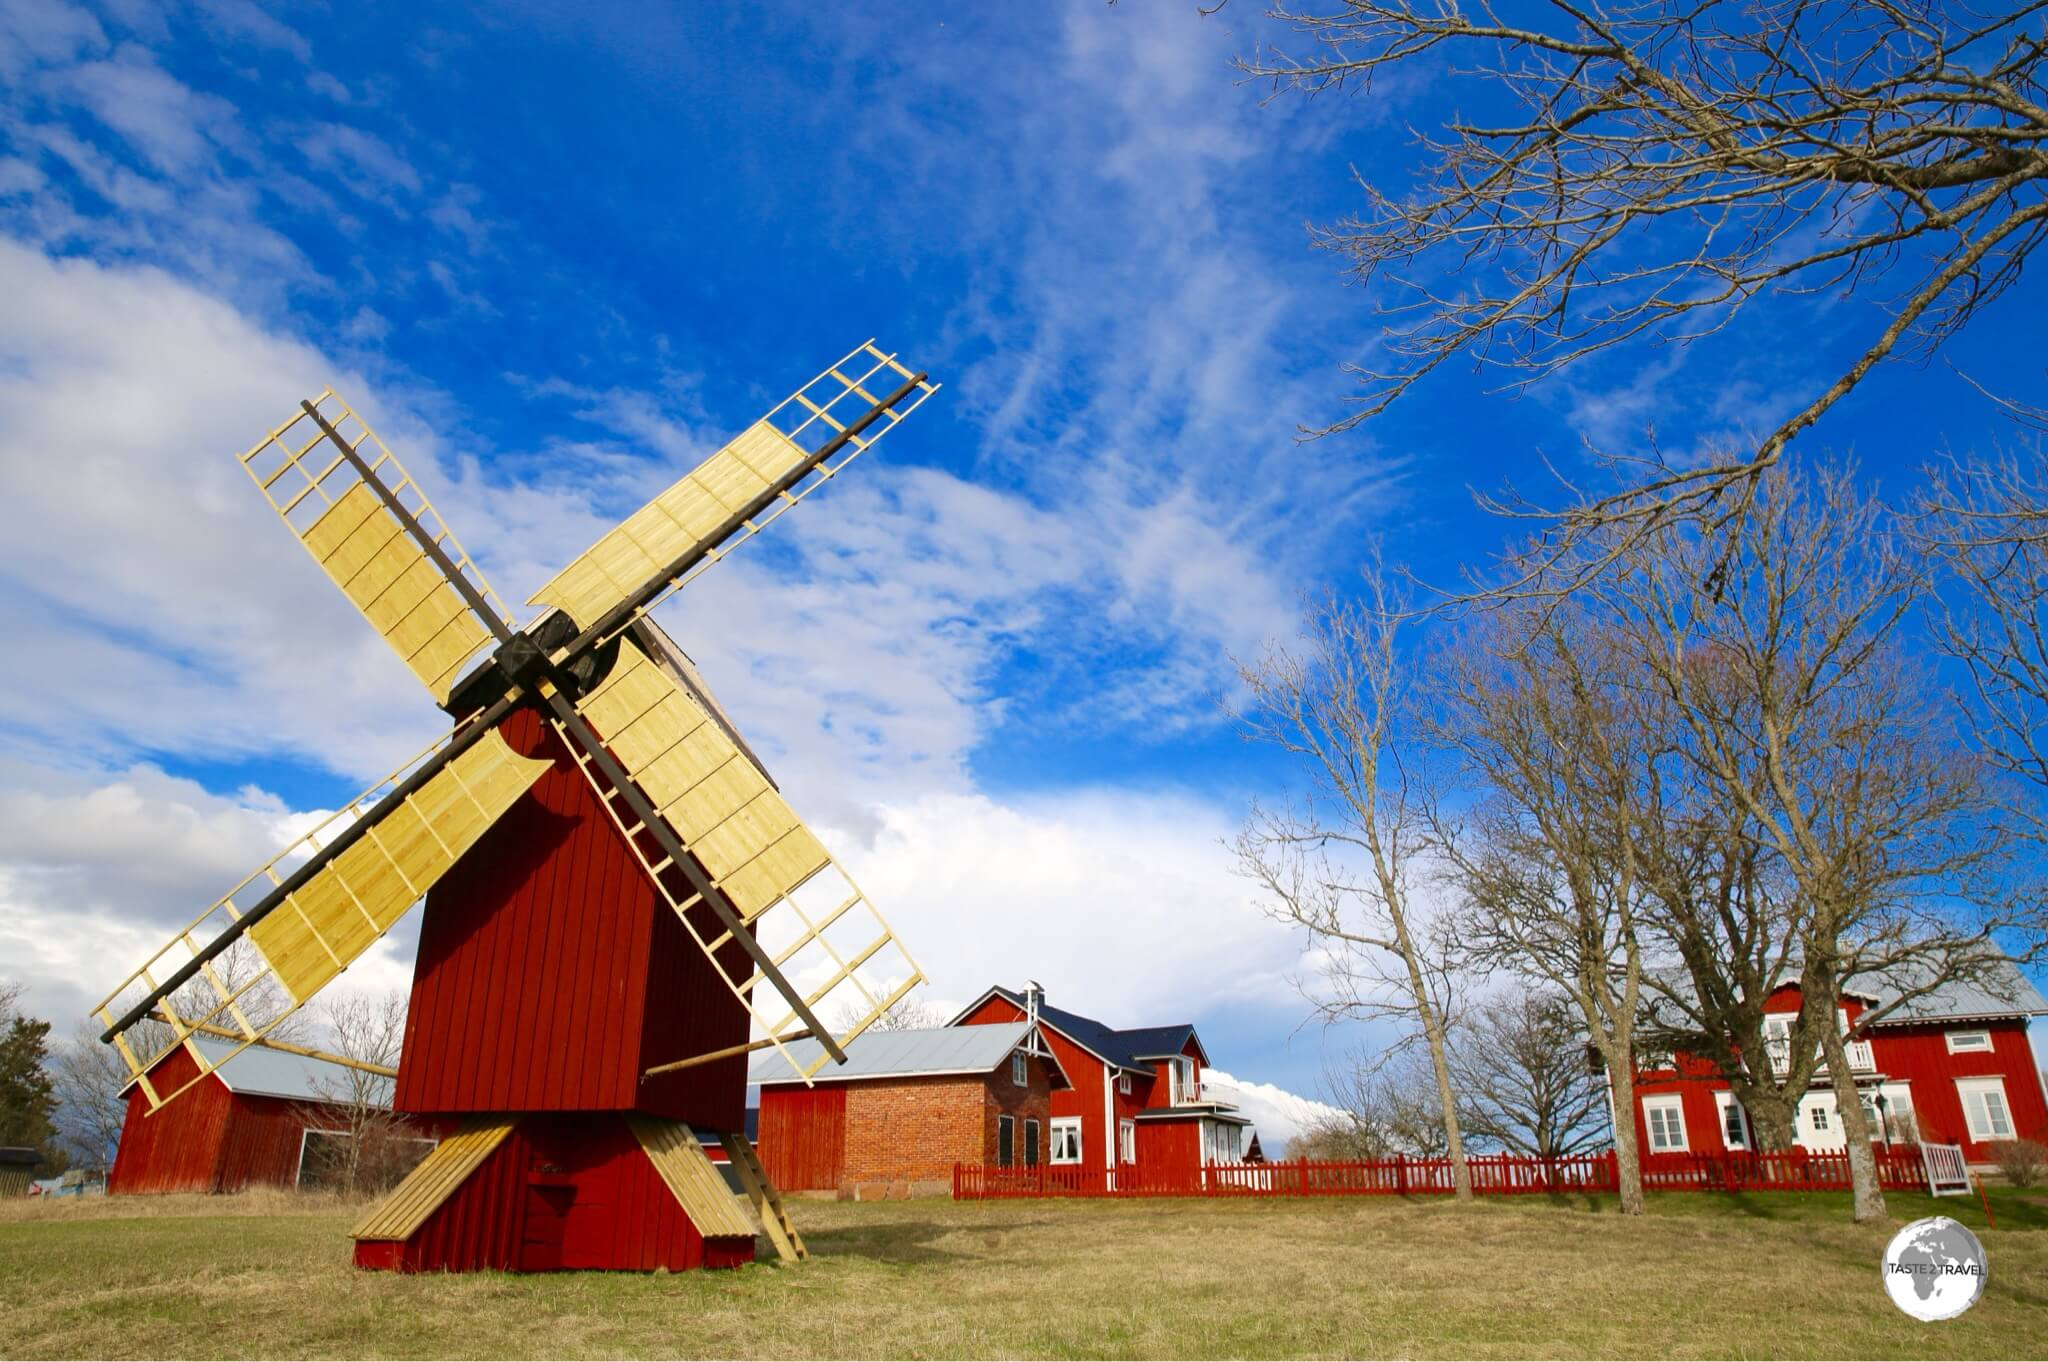 A typical windmill on the Åland Islands.